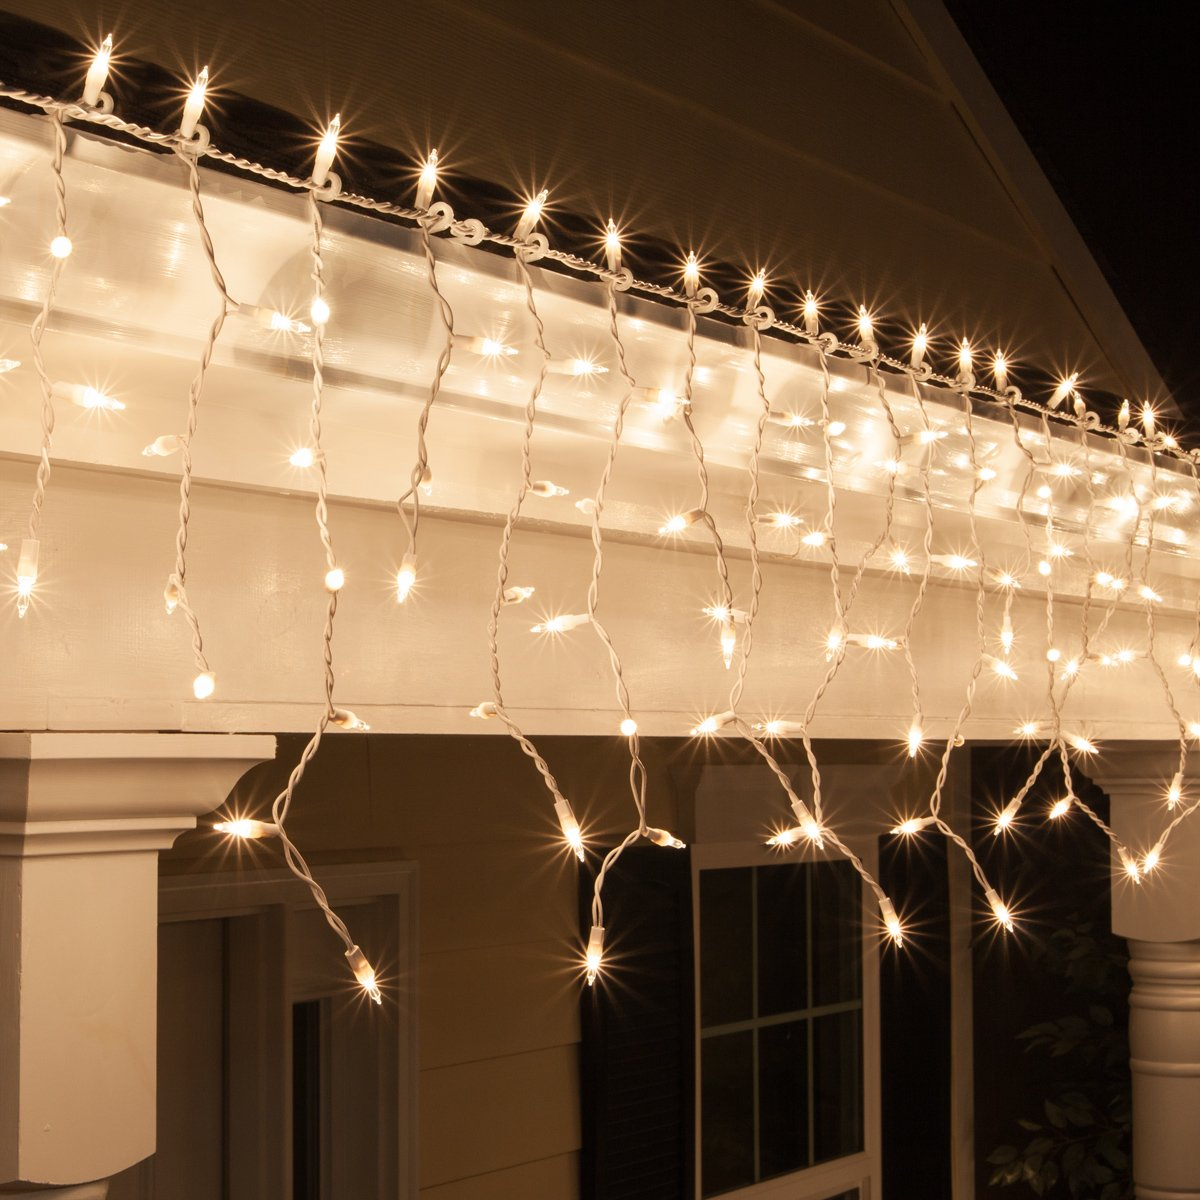 amazoncom 9 ft 150 clear icicle lights white wire indoor outdoor christmas lights outdoor holiday icicle lights home kitchen - White Icicle Christmas Lights